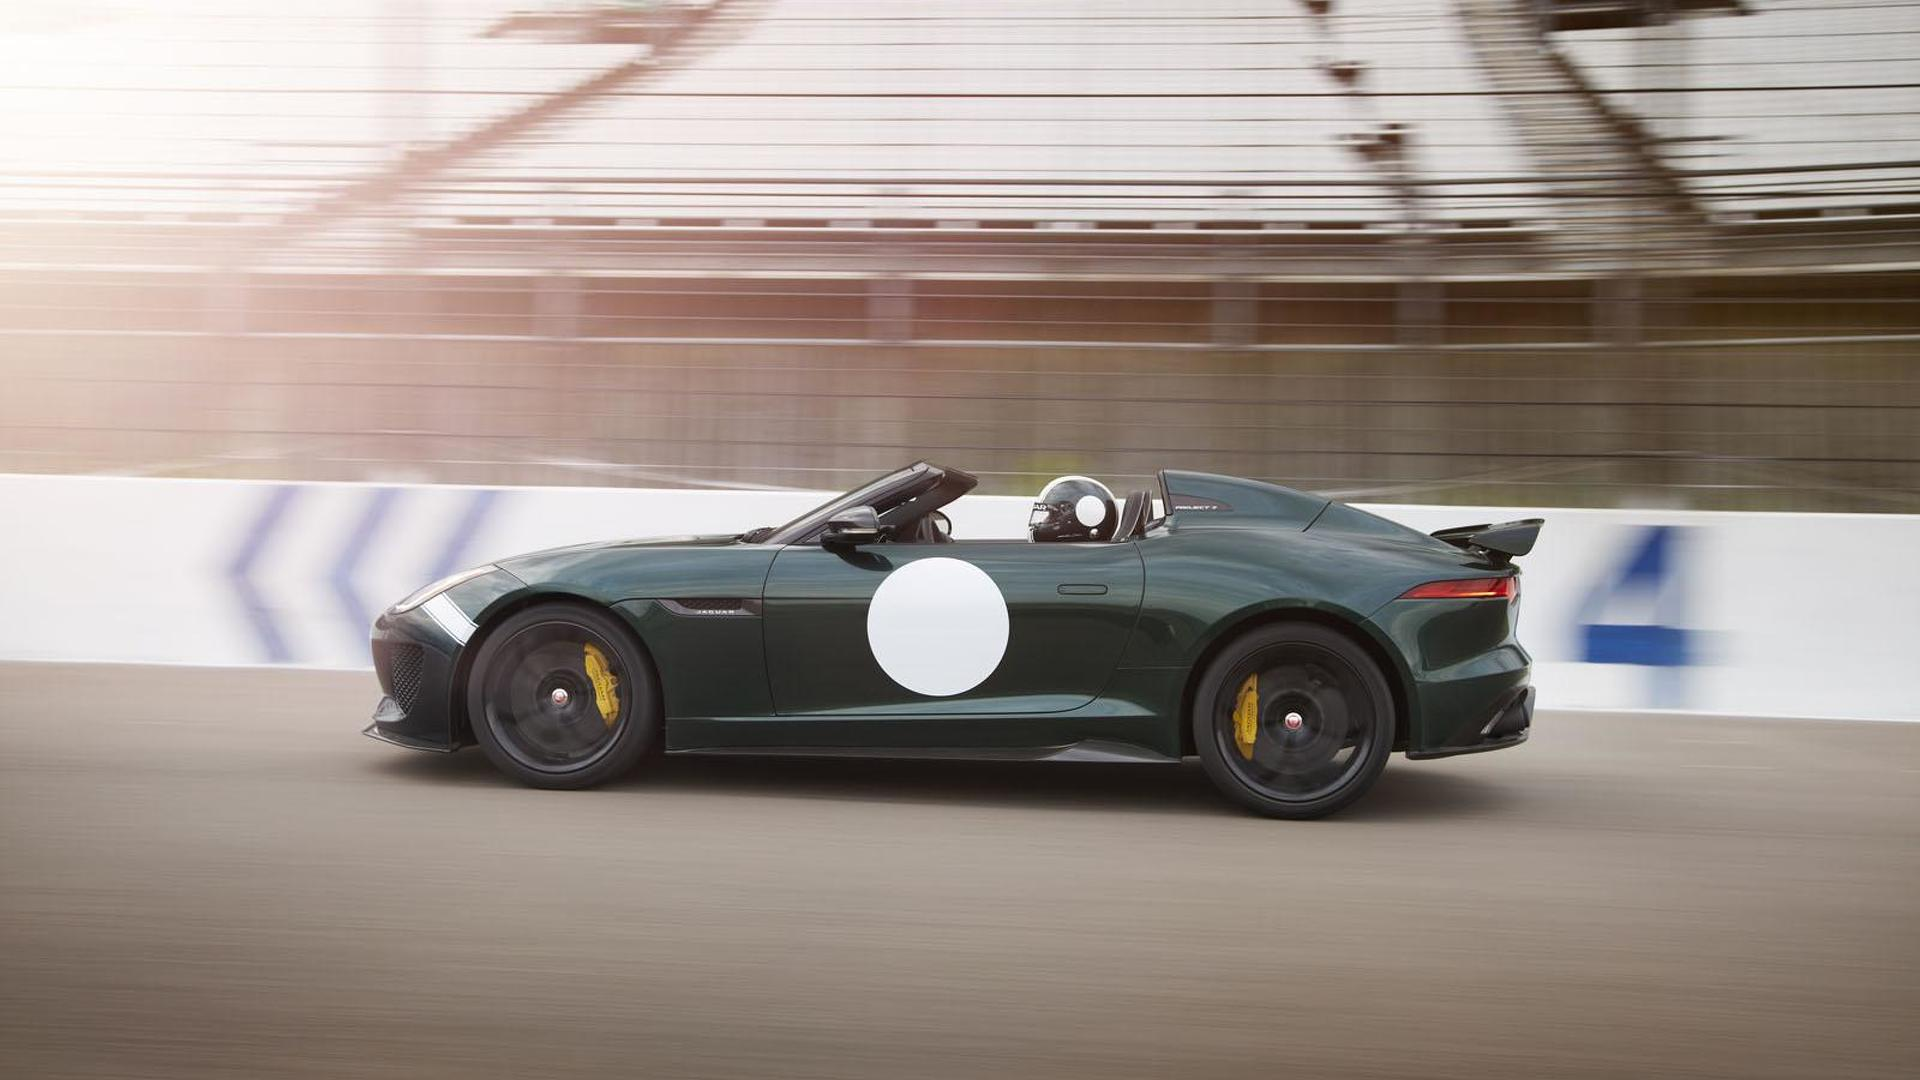 Jaguar Land Rover's SVO working on new limited edition models - report